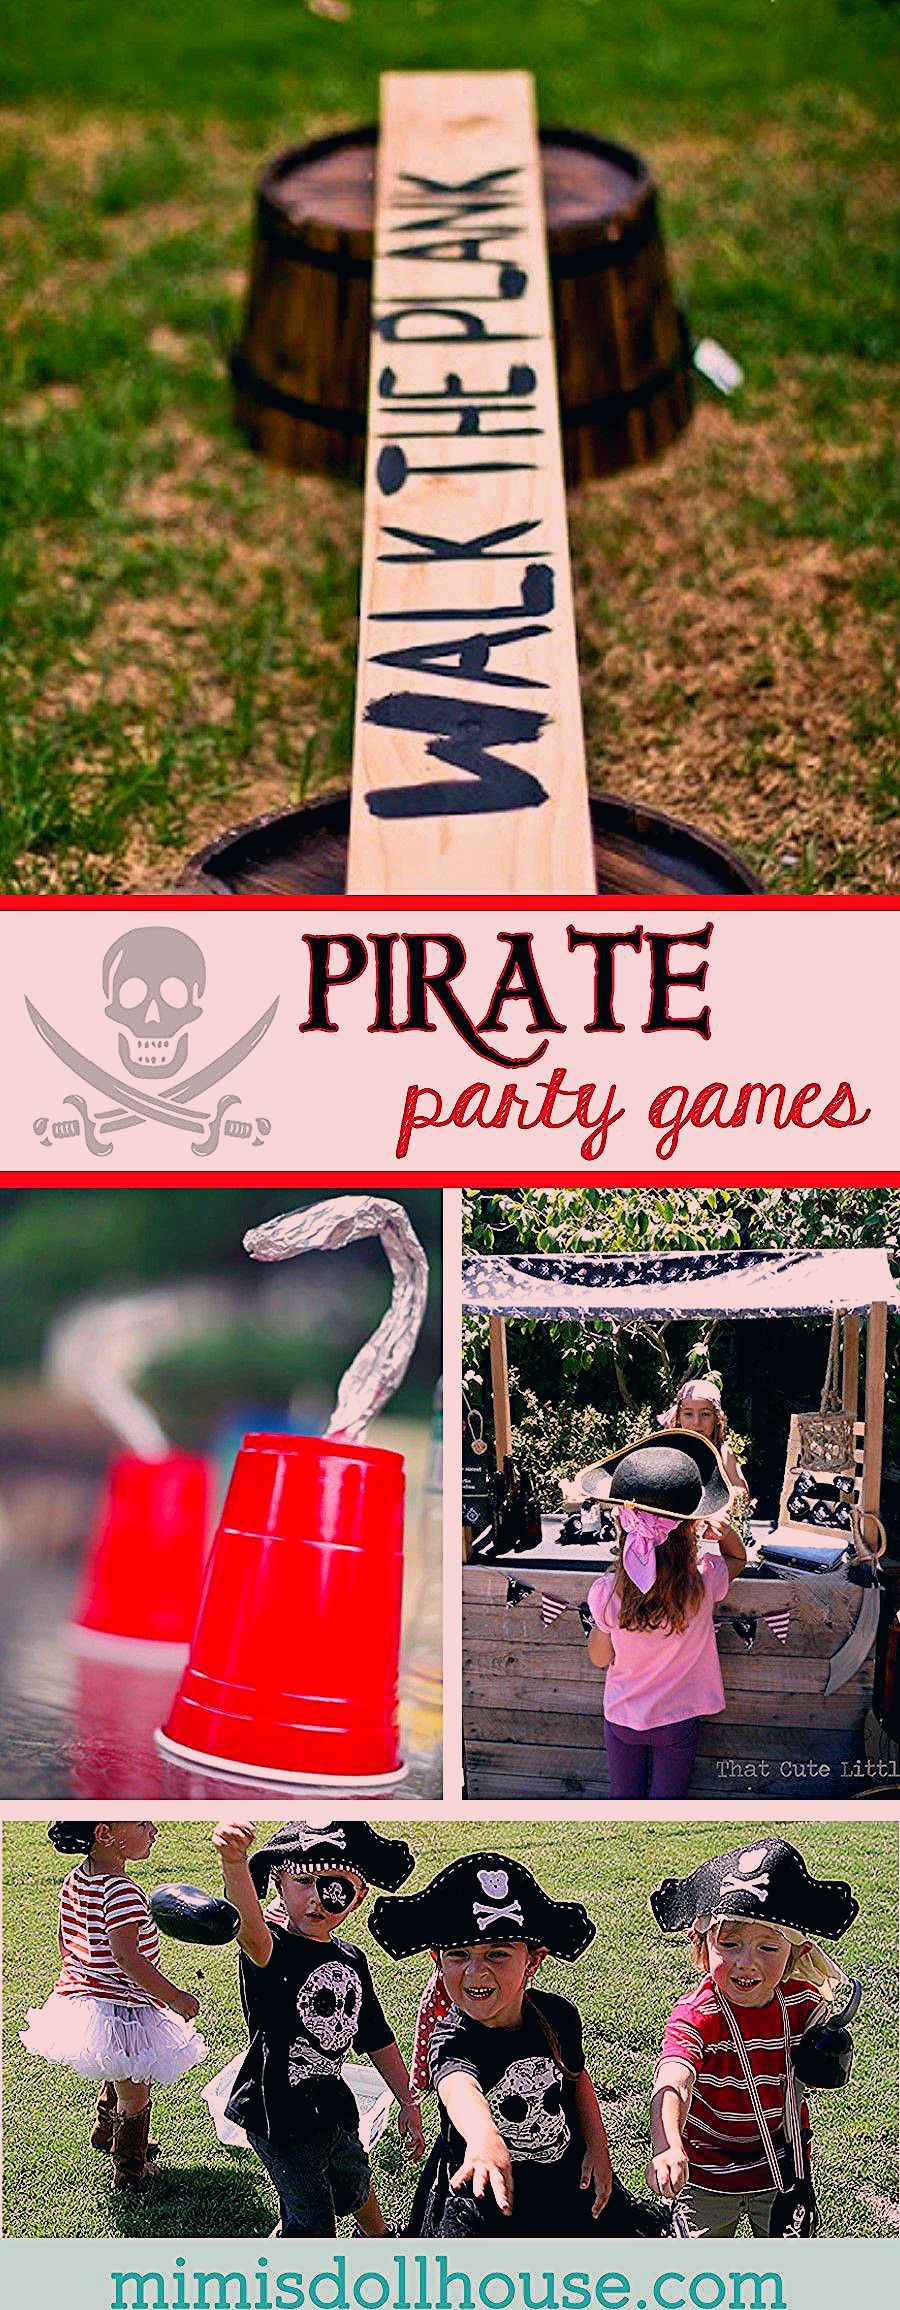 Photo of Pirate Party: Set sail with Pirate Party Game Ideas